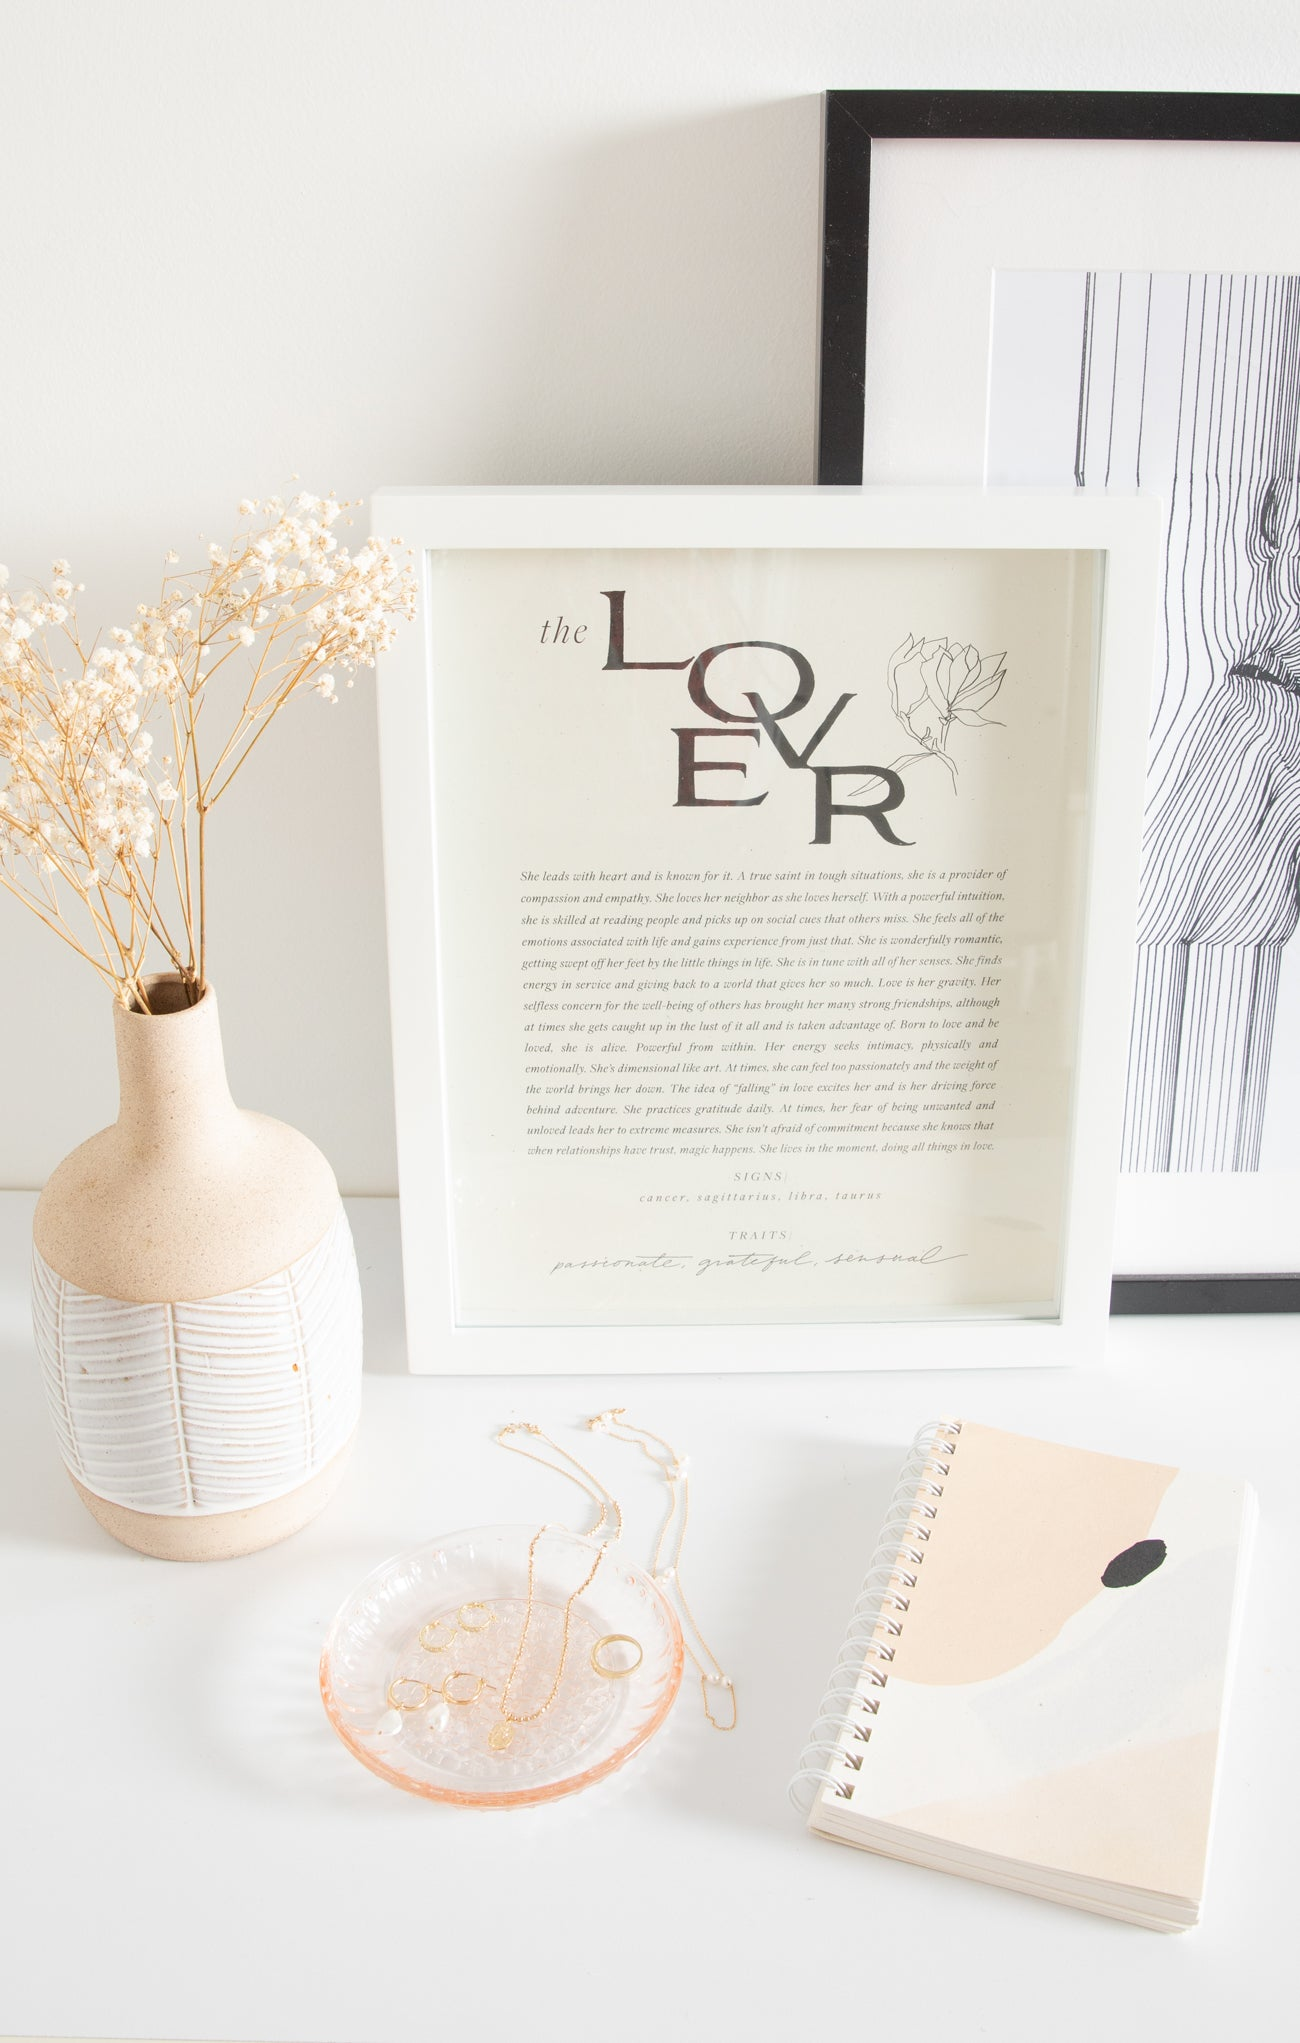 Paper Goods The Lover Art Print by Wilde House Paper The Lover Art Print by Wilde House Paper